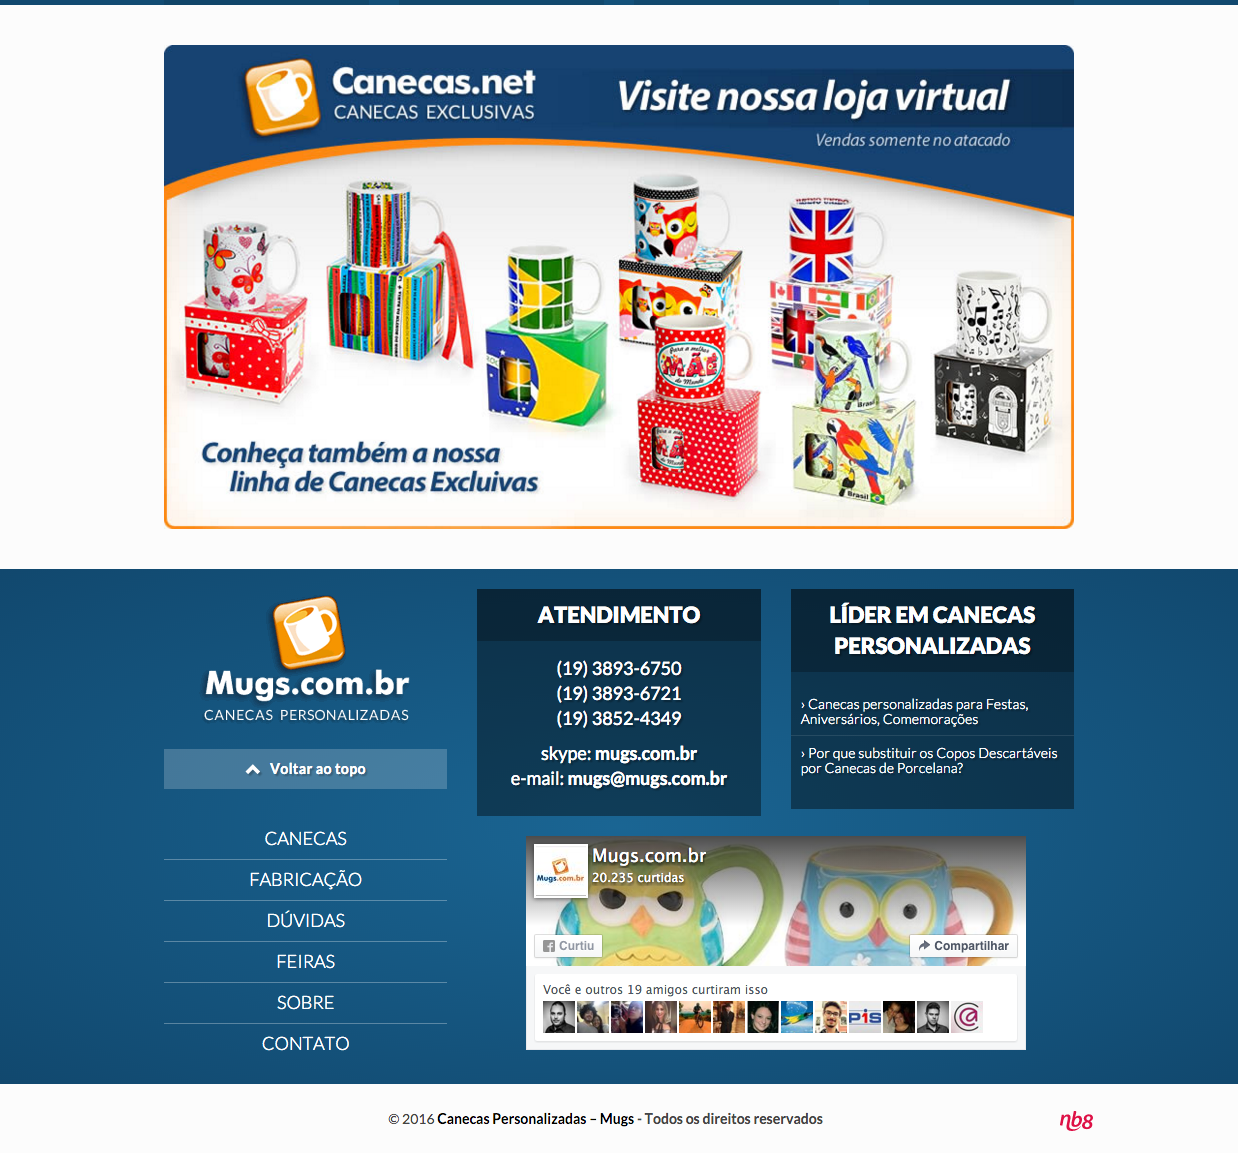 Mugs.com.br website designed with WooCommerce